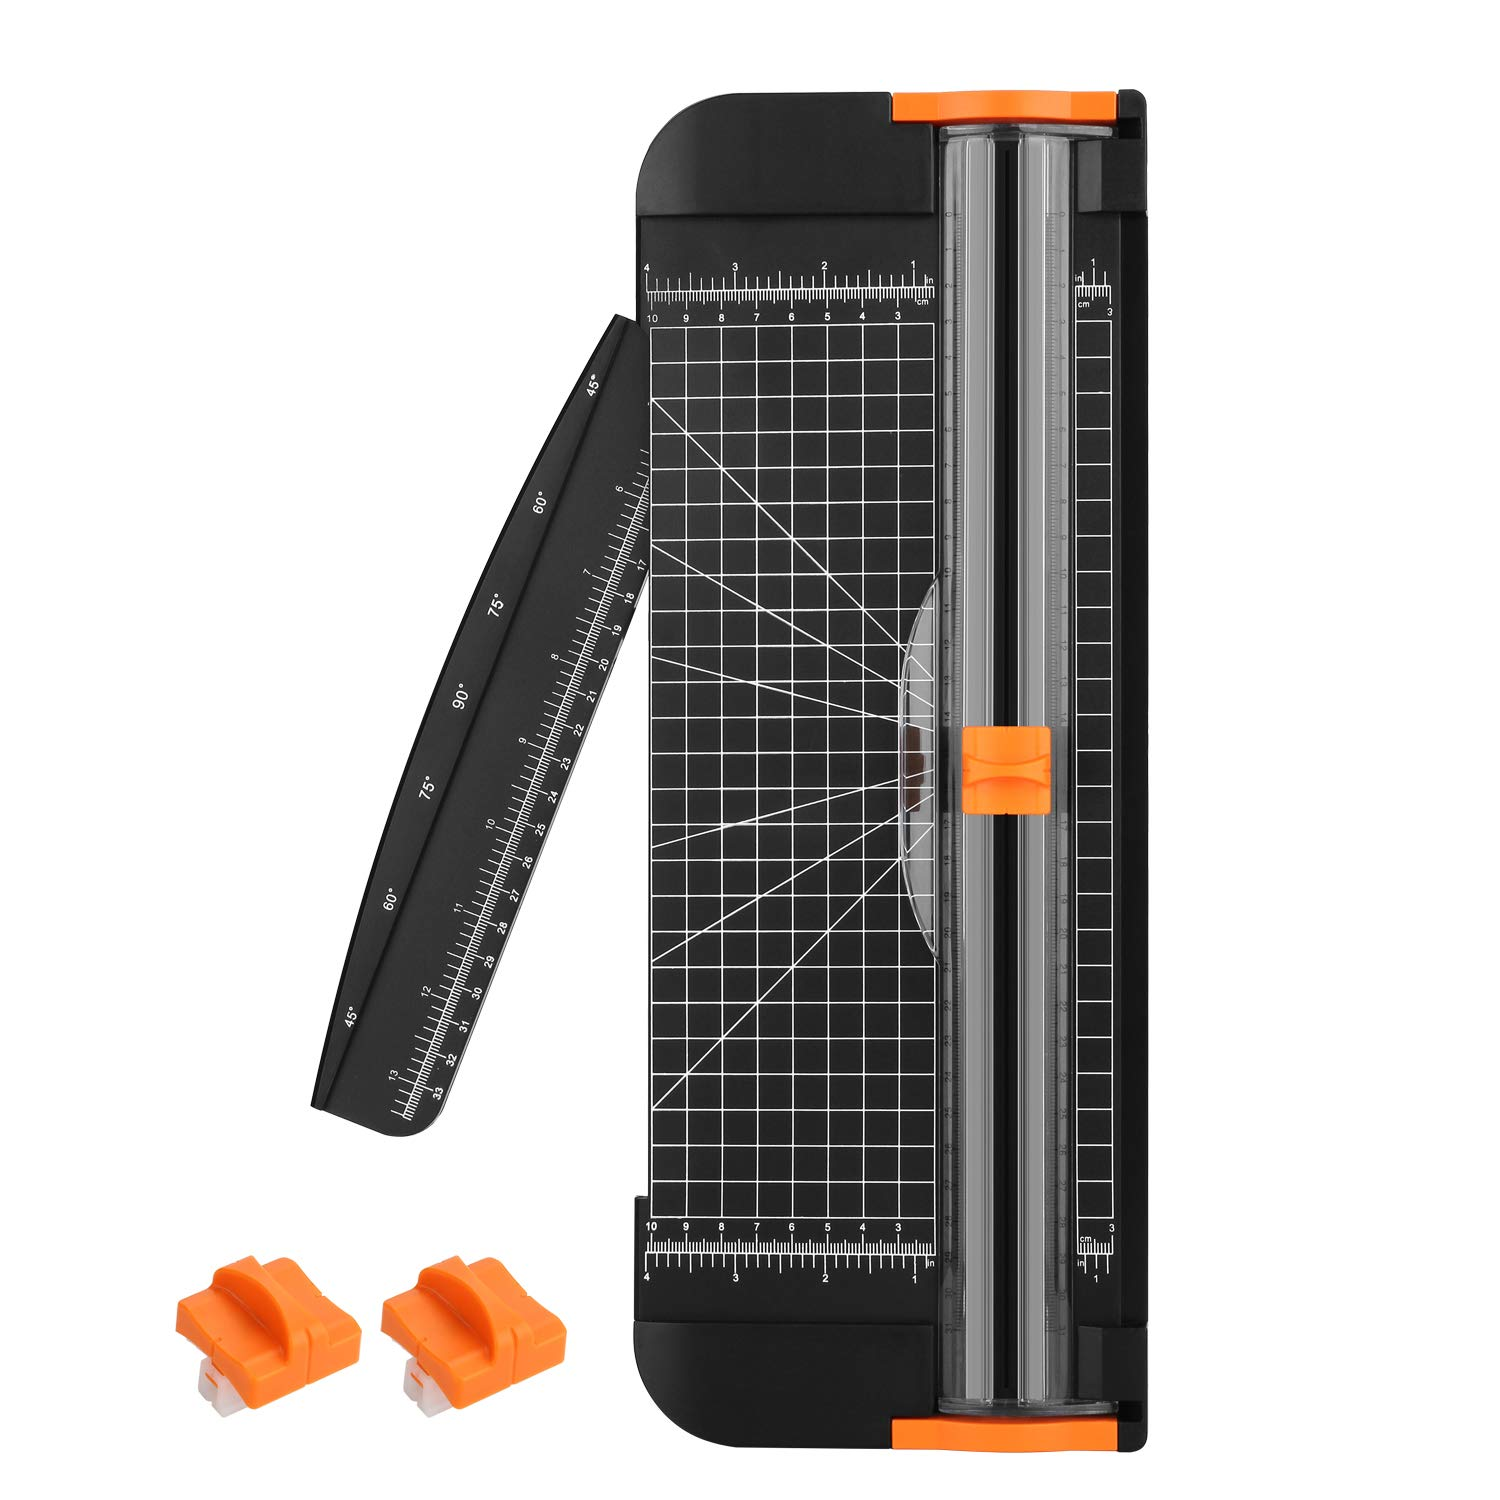 Paper Cutter, AGPTEK 12'' A4 Paper Trimmer with Automatic Security Safeguard for Scrapbooking, Craft Paper,Label & Photos - with Ruler and 2 Extra Blades